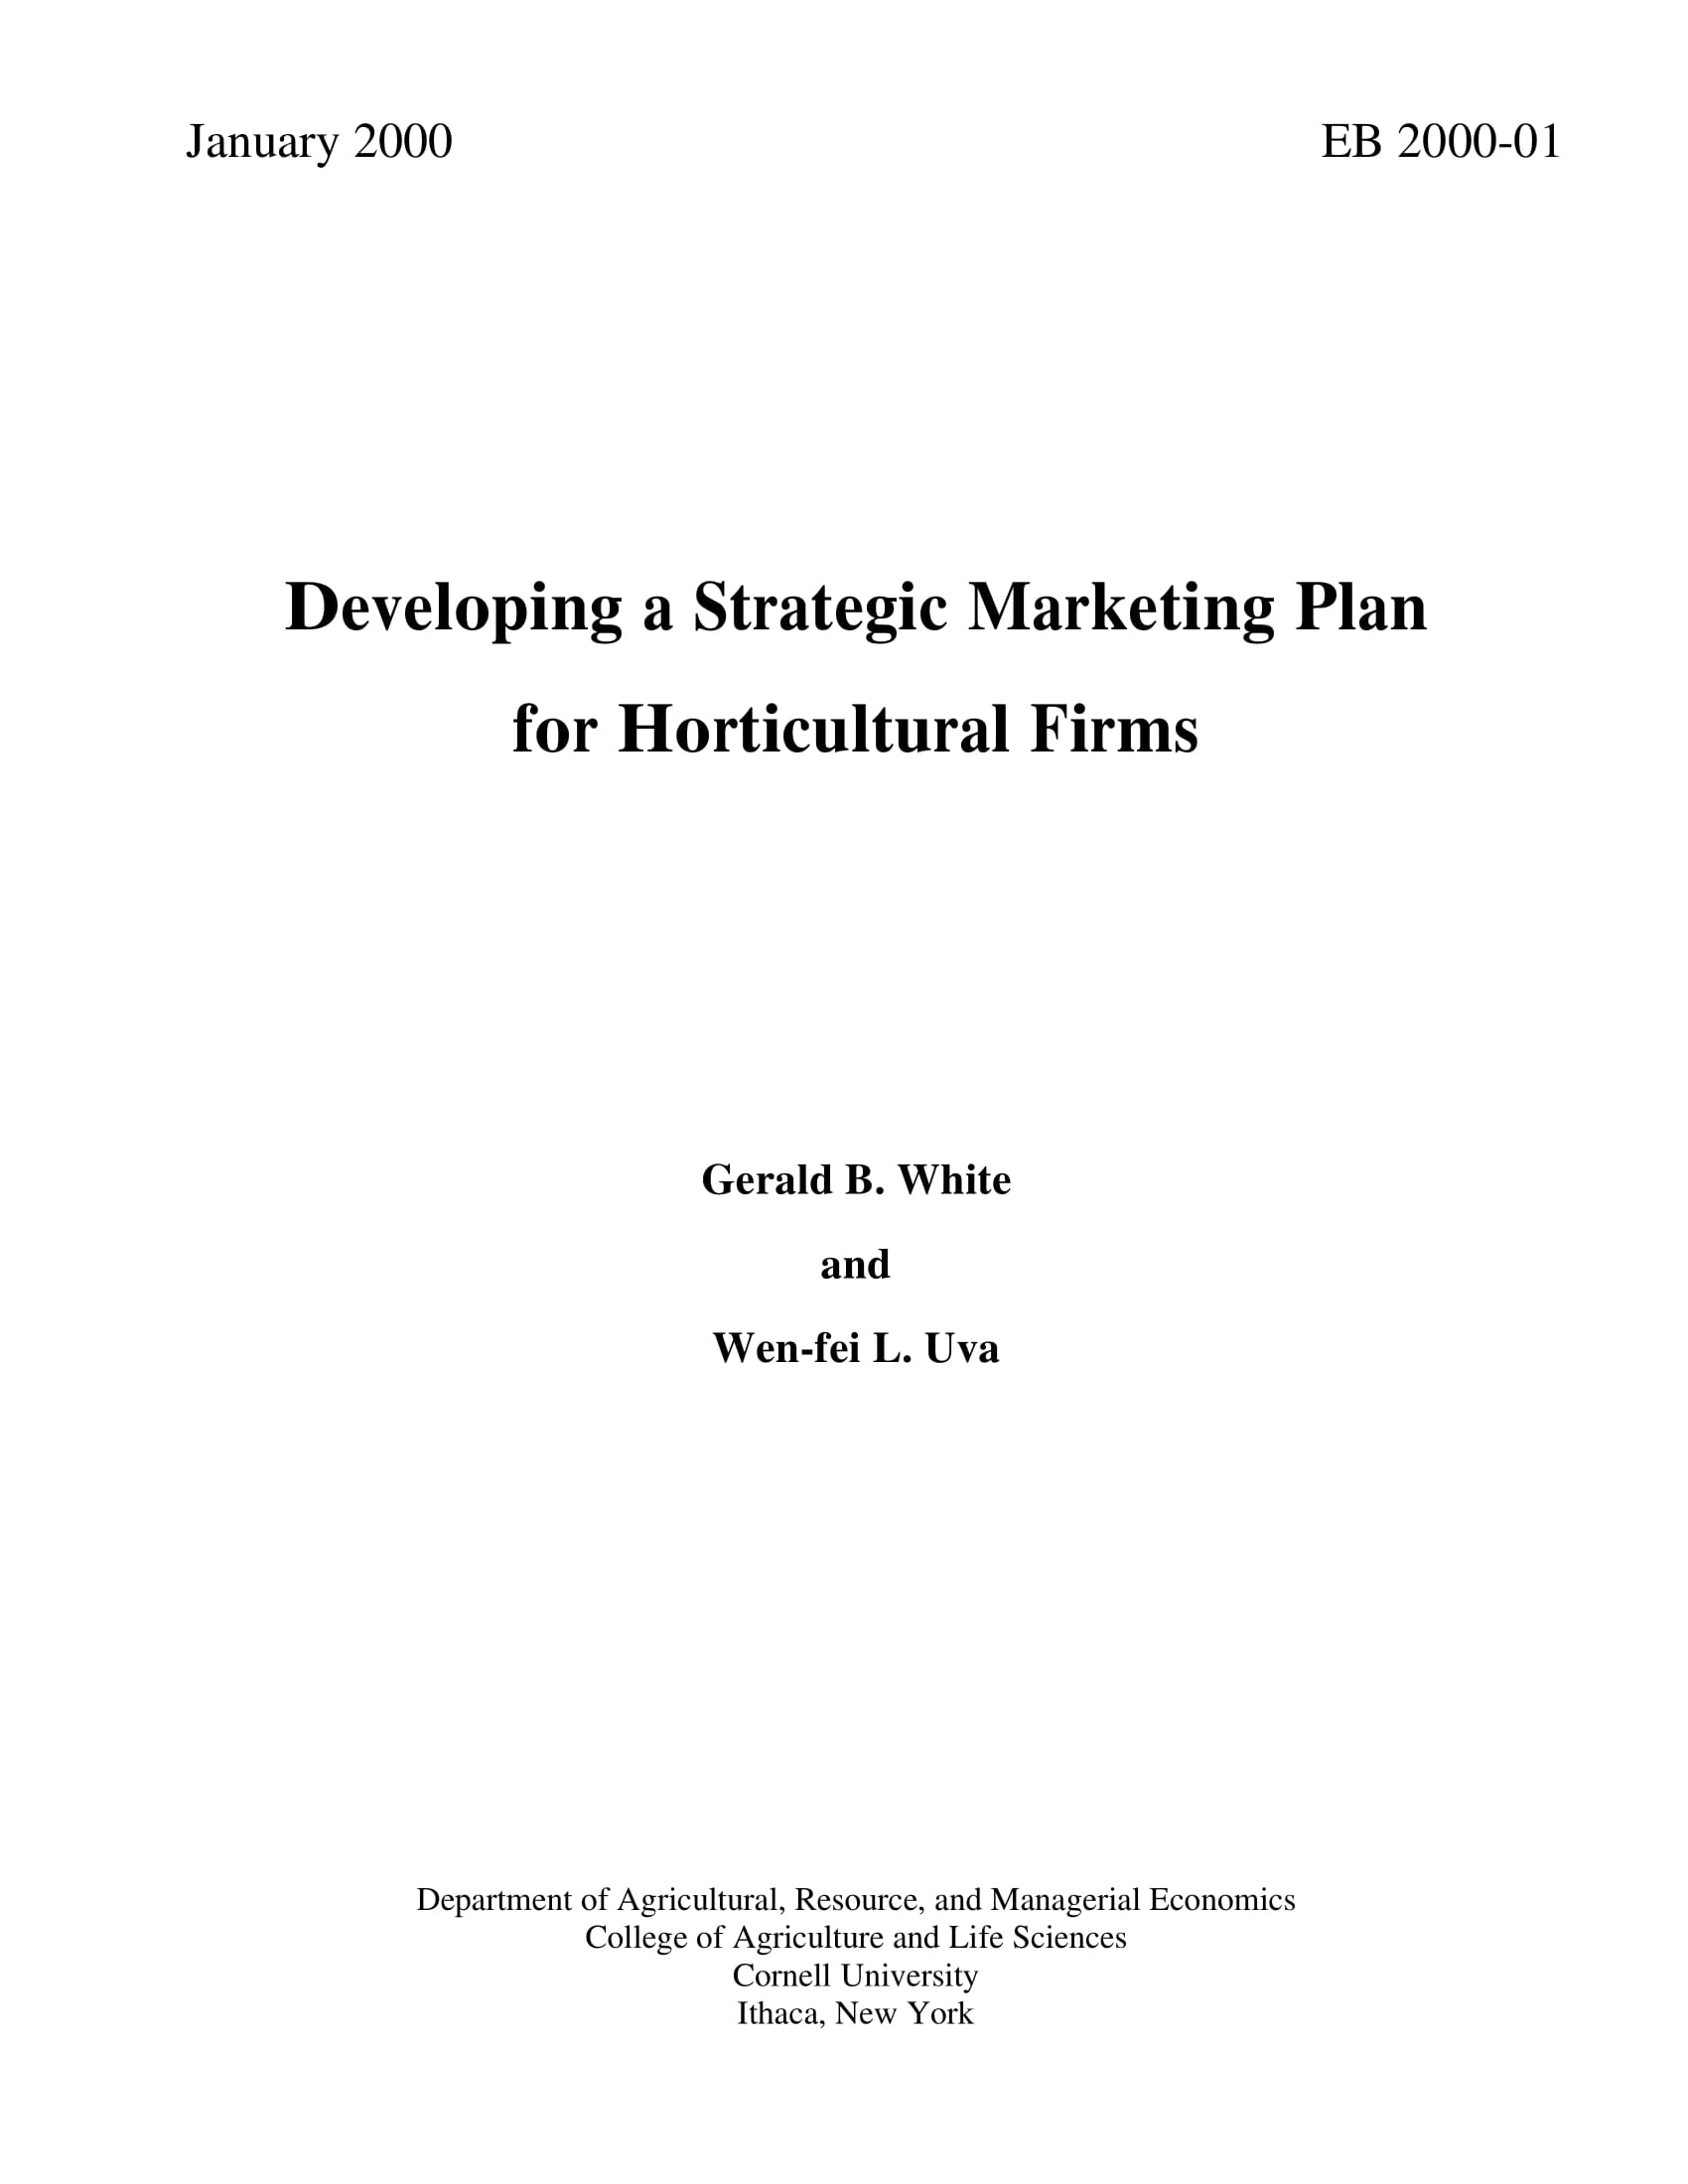 horticultural firm strategic marketing plan example